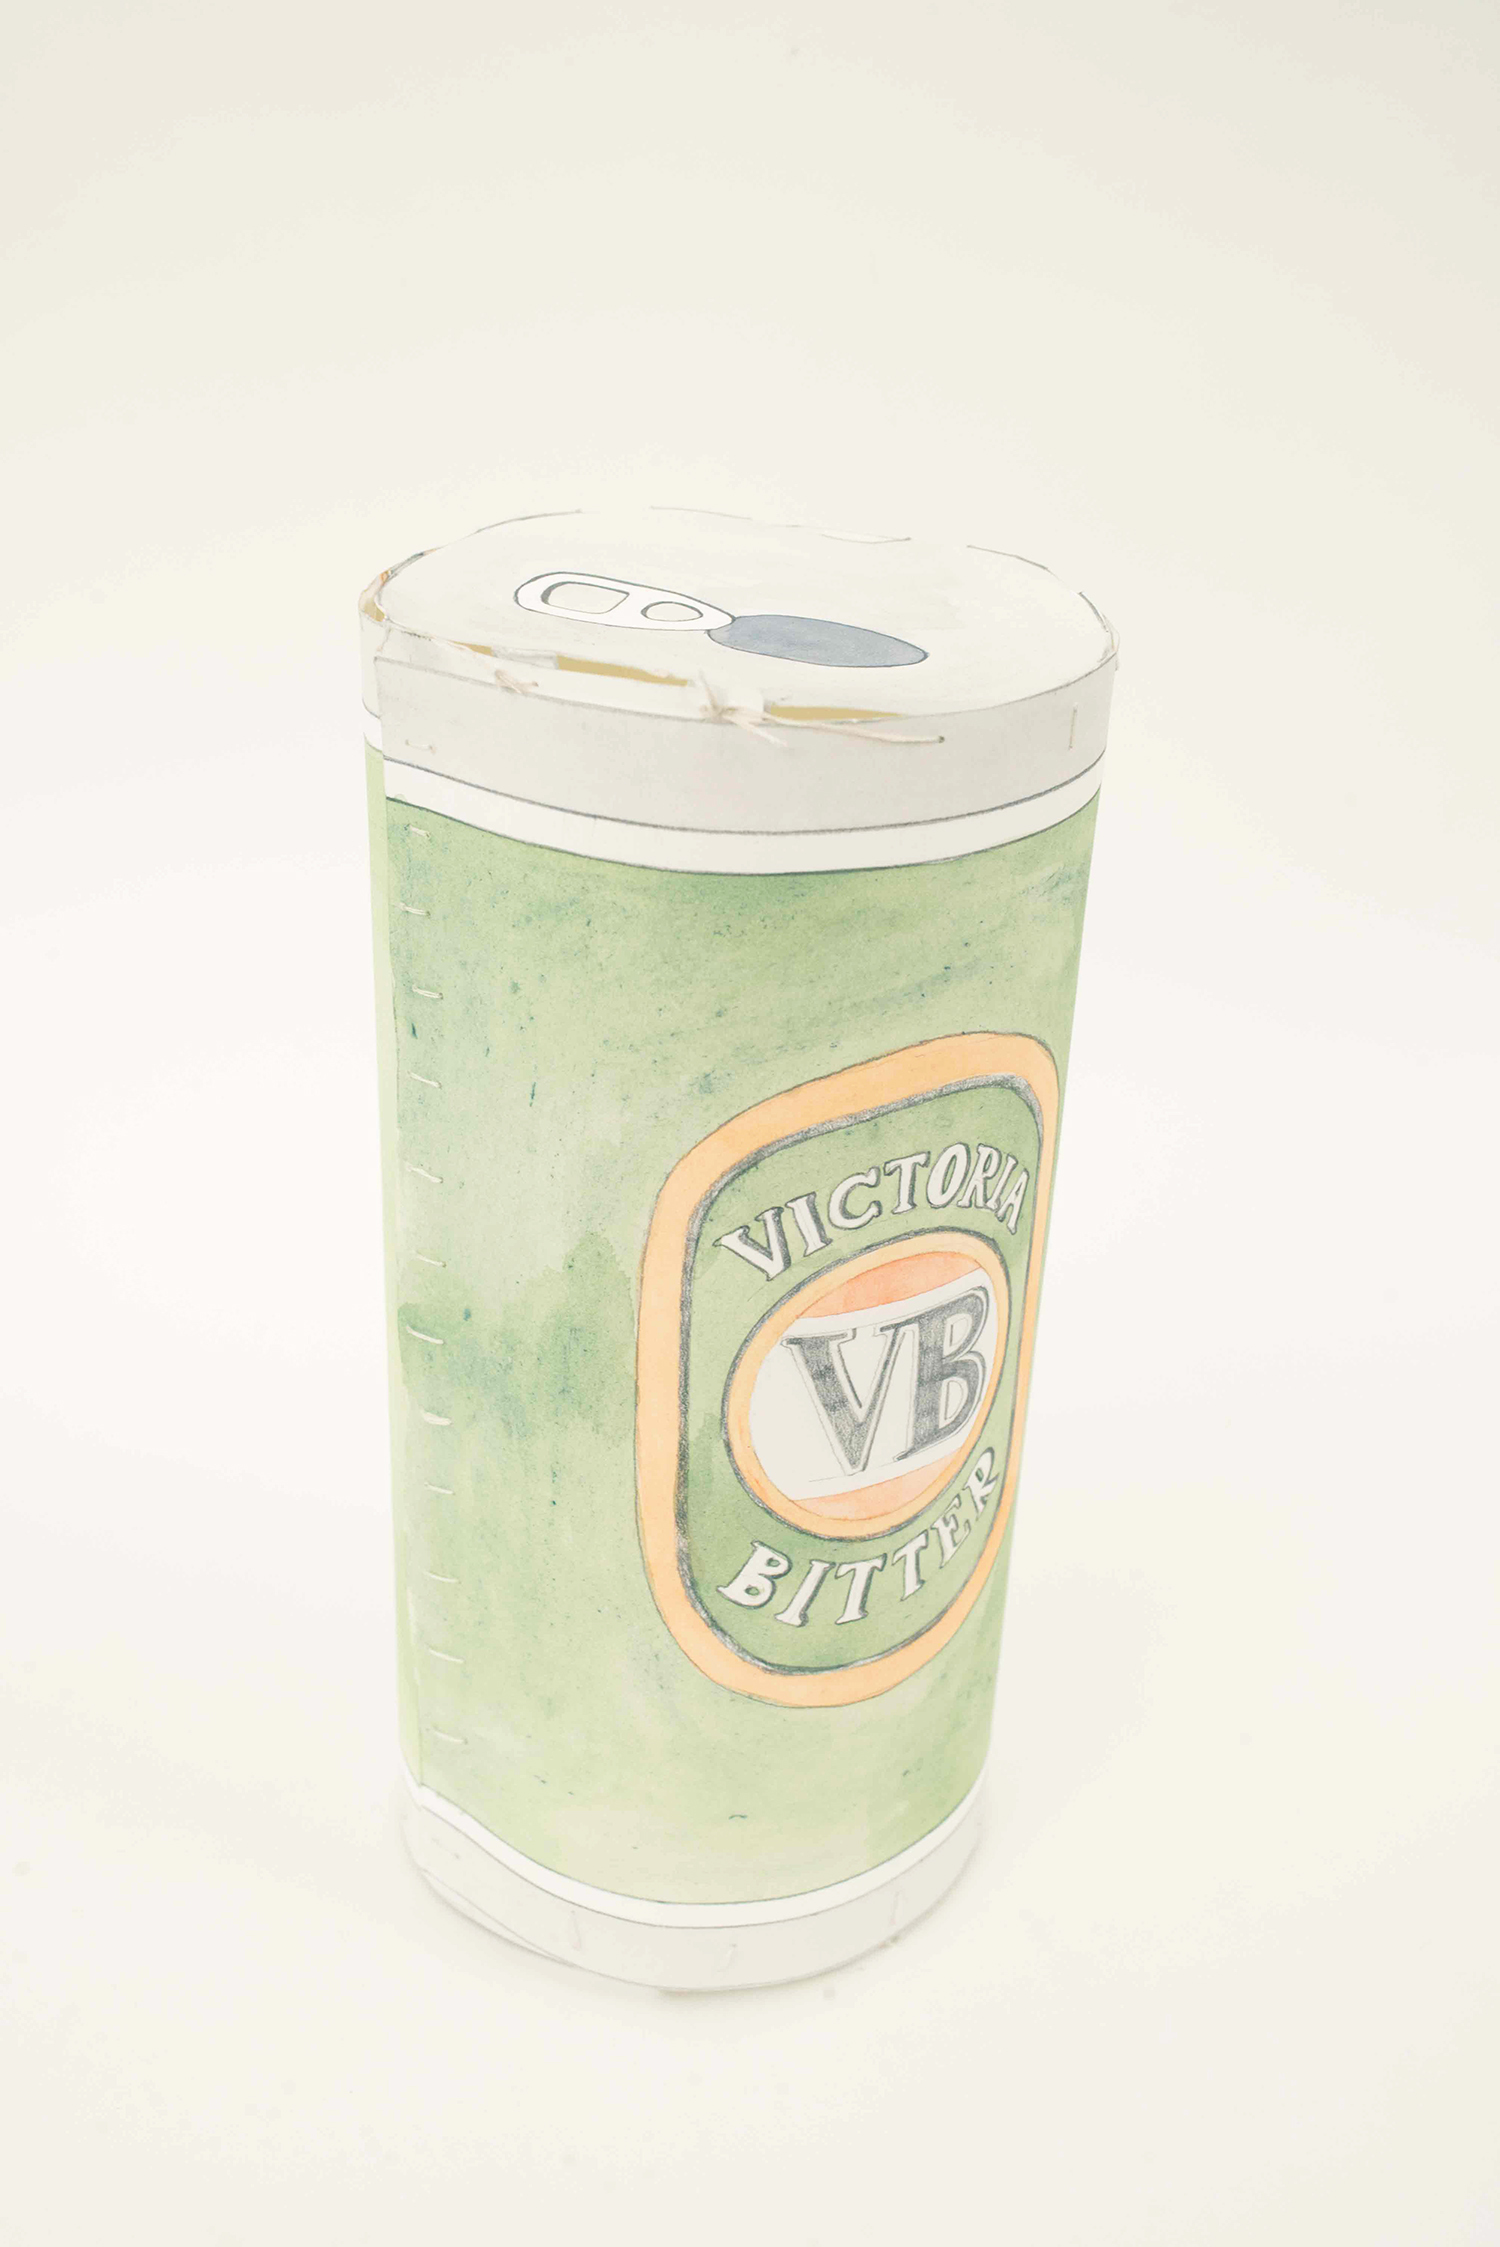 Beer Can, 2014, Watercolour, pencil, thread, paper, 20.0 x 9.5 cm, 1 of 5